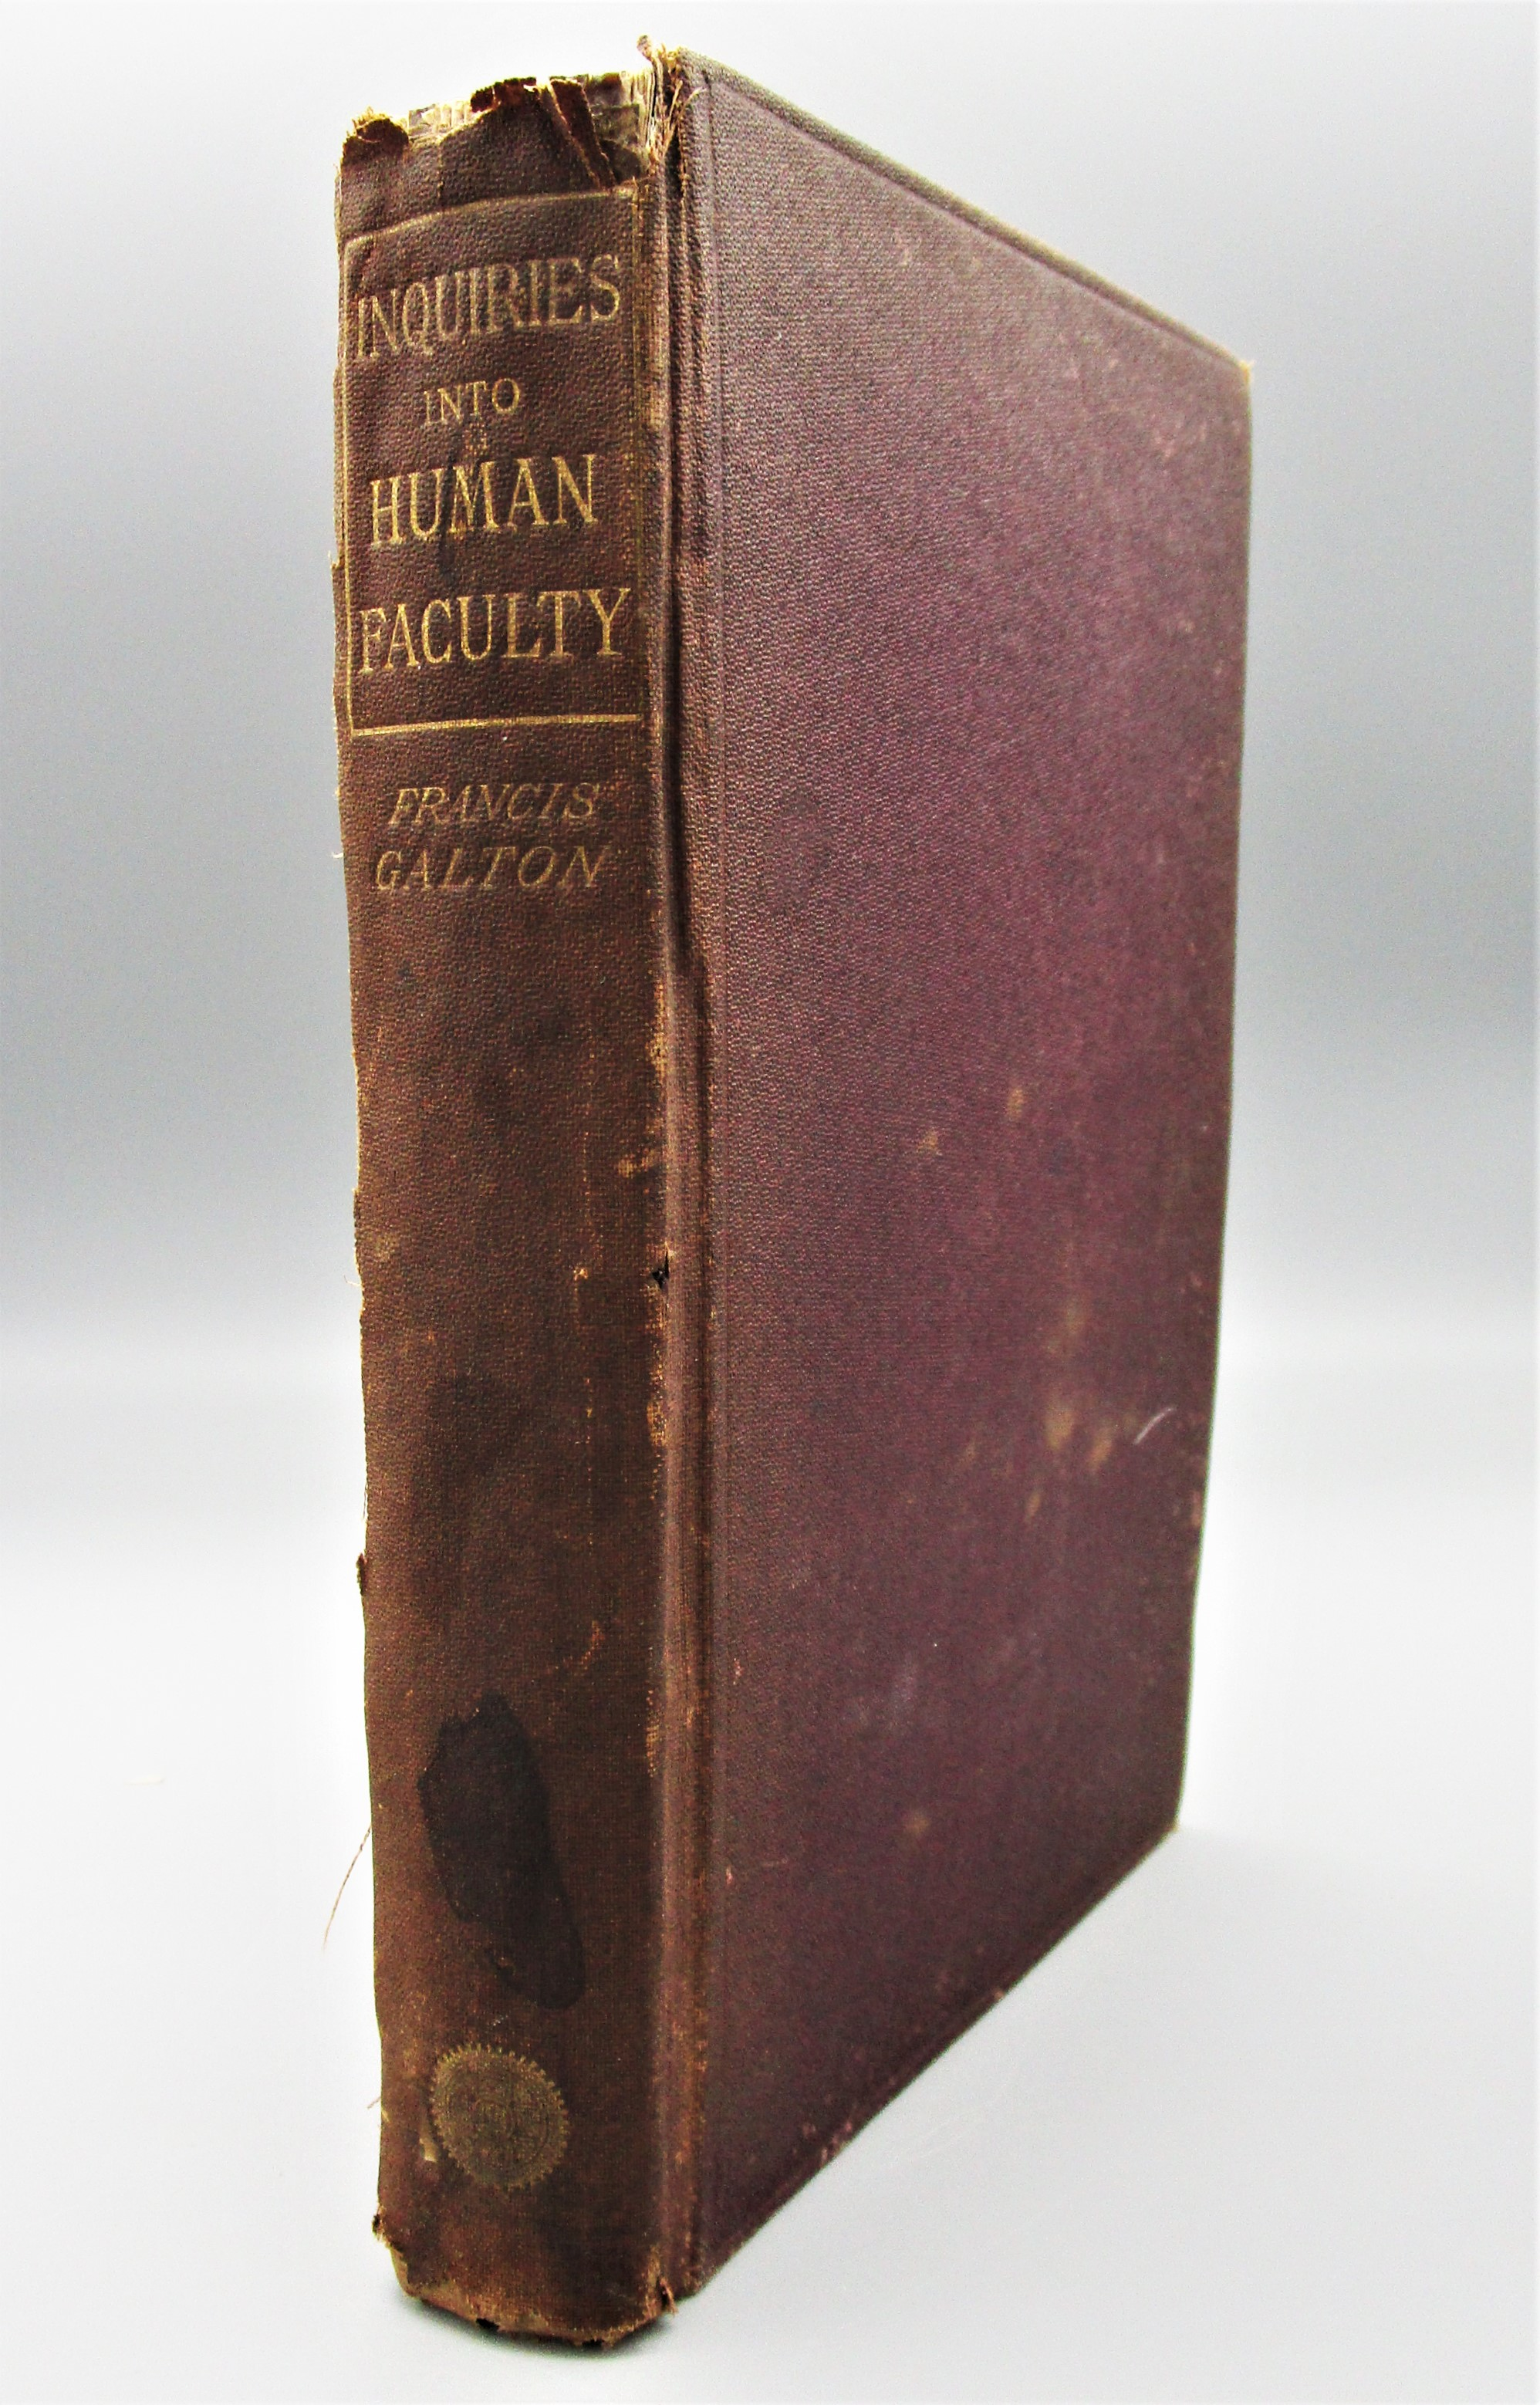 INQUIRIES INTO HUMAN FACULTY AND ITS DEVELOPMENT, by Francis Galton - 1883